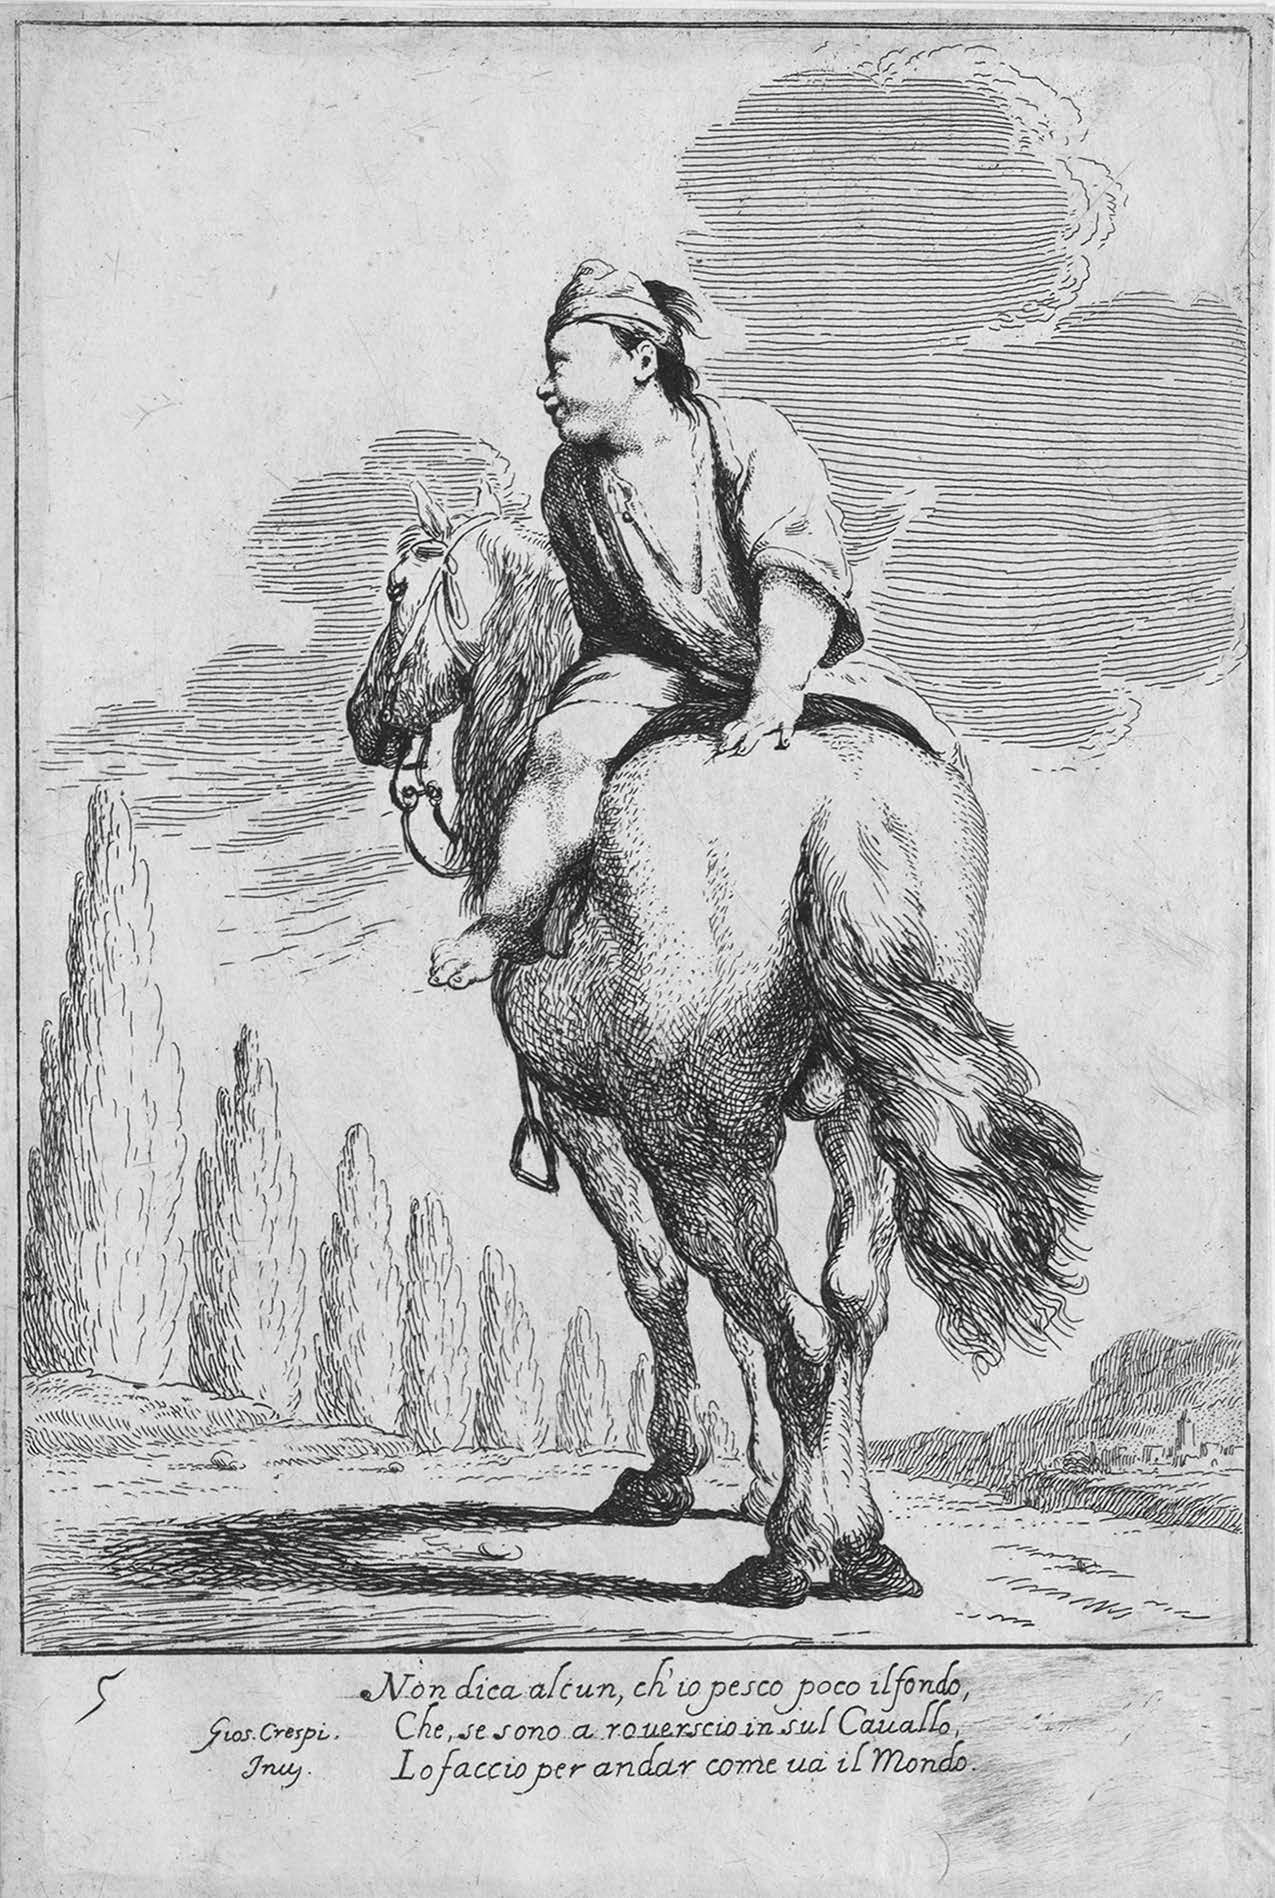 "FIGURE 1. Giuseppe Maria Crespi, Cacasenno Riding Backwards, 1705–1715. The legend: ""Don't say that I rarely fish the depths/Just because I ride your horse backwards. I do it to go as the world does."" My thanks to Jennifer Scappetone and Luca del Baldo for help with this translation."